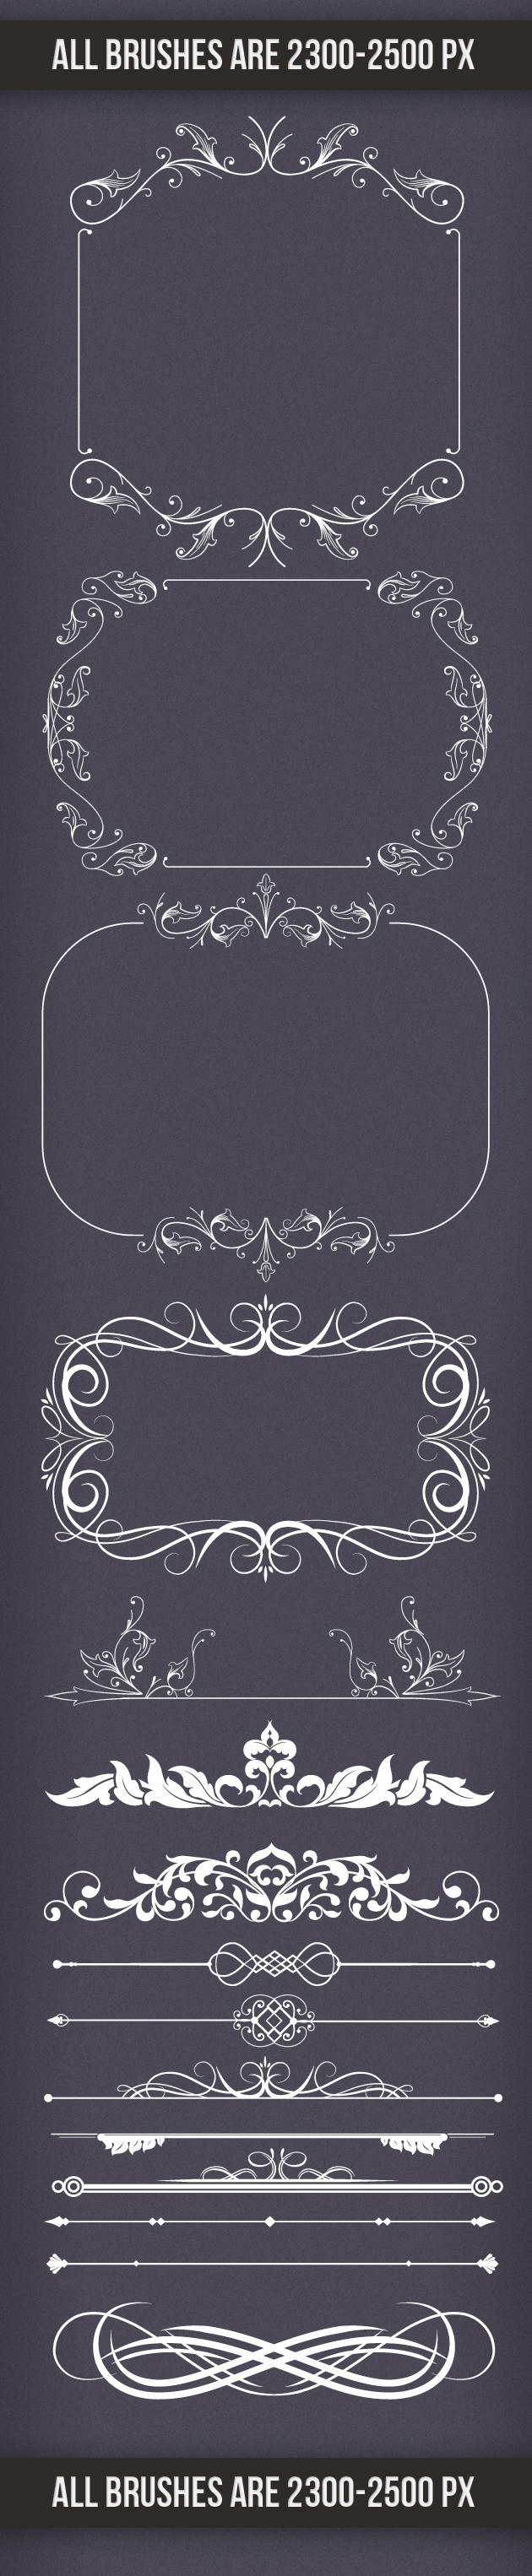 Decoration-Frames-and-Dividers-PS-Brushes designtnt brushes decoration frames large